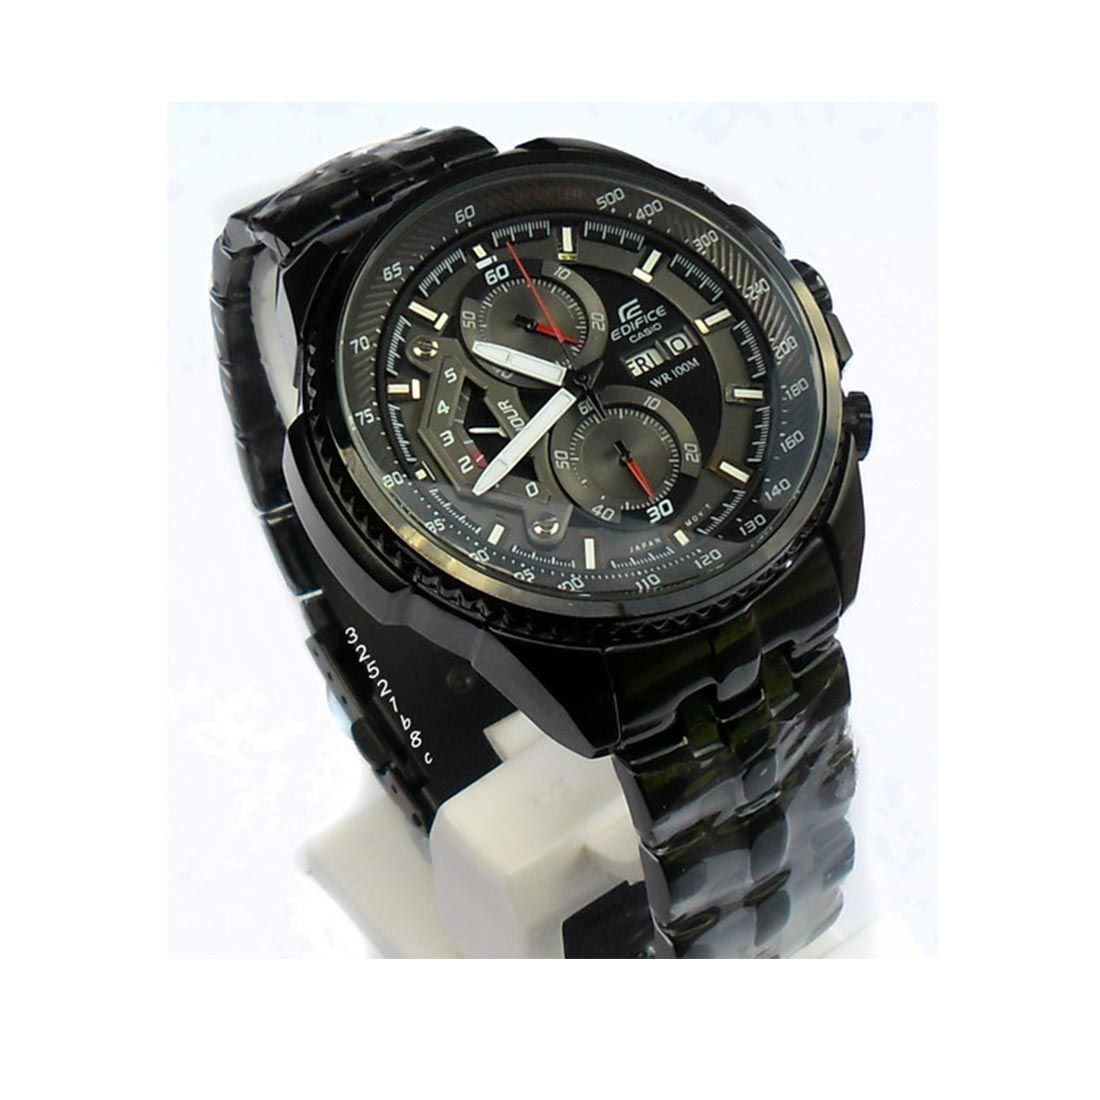 590d8412f5d9 CASIO EDIFICE Buy  Casio Edifice EF 558 Full Black  Men s  Watch ...